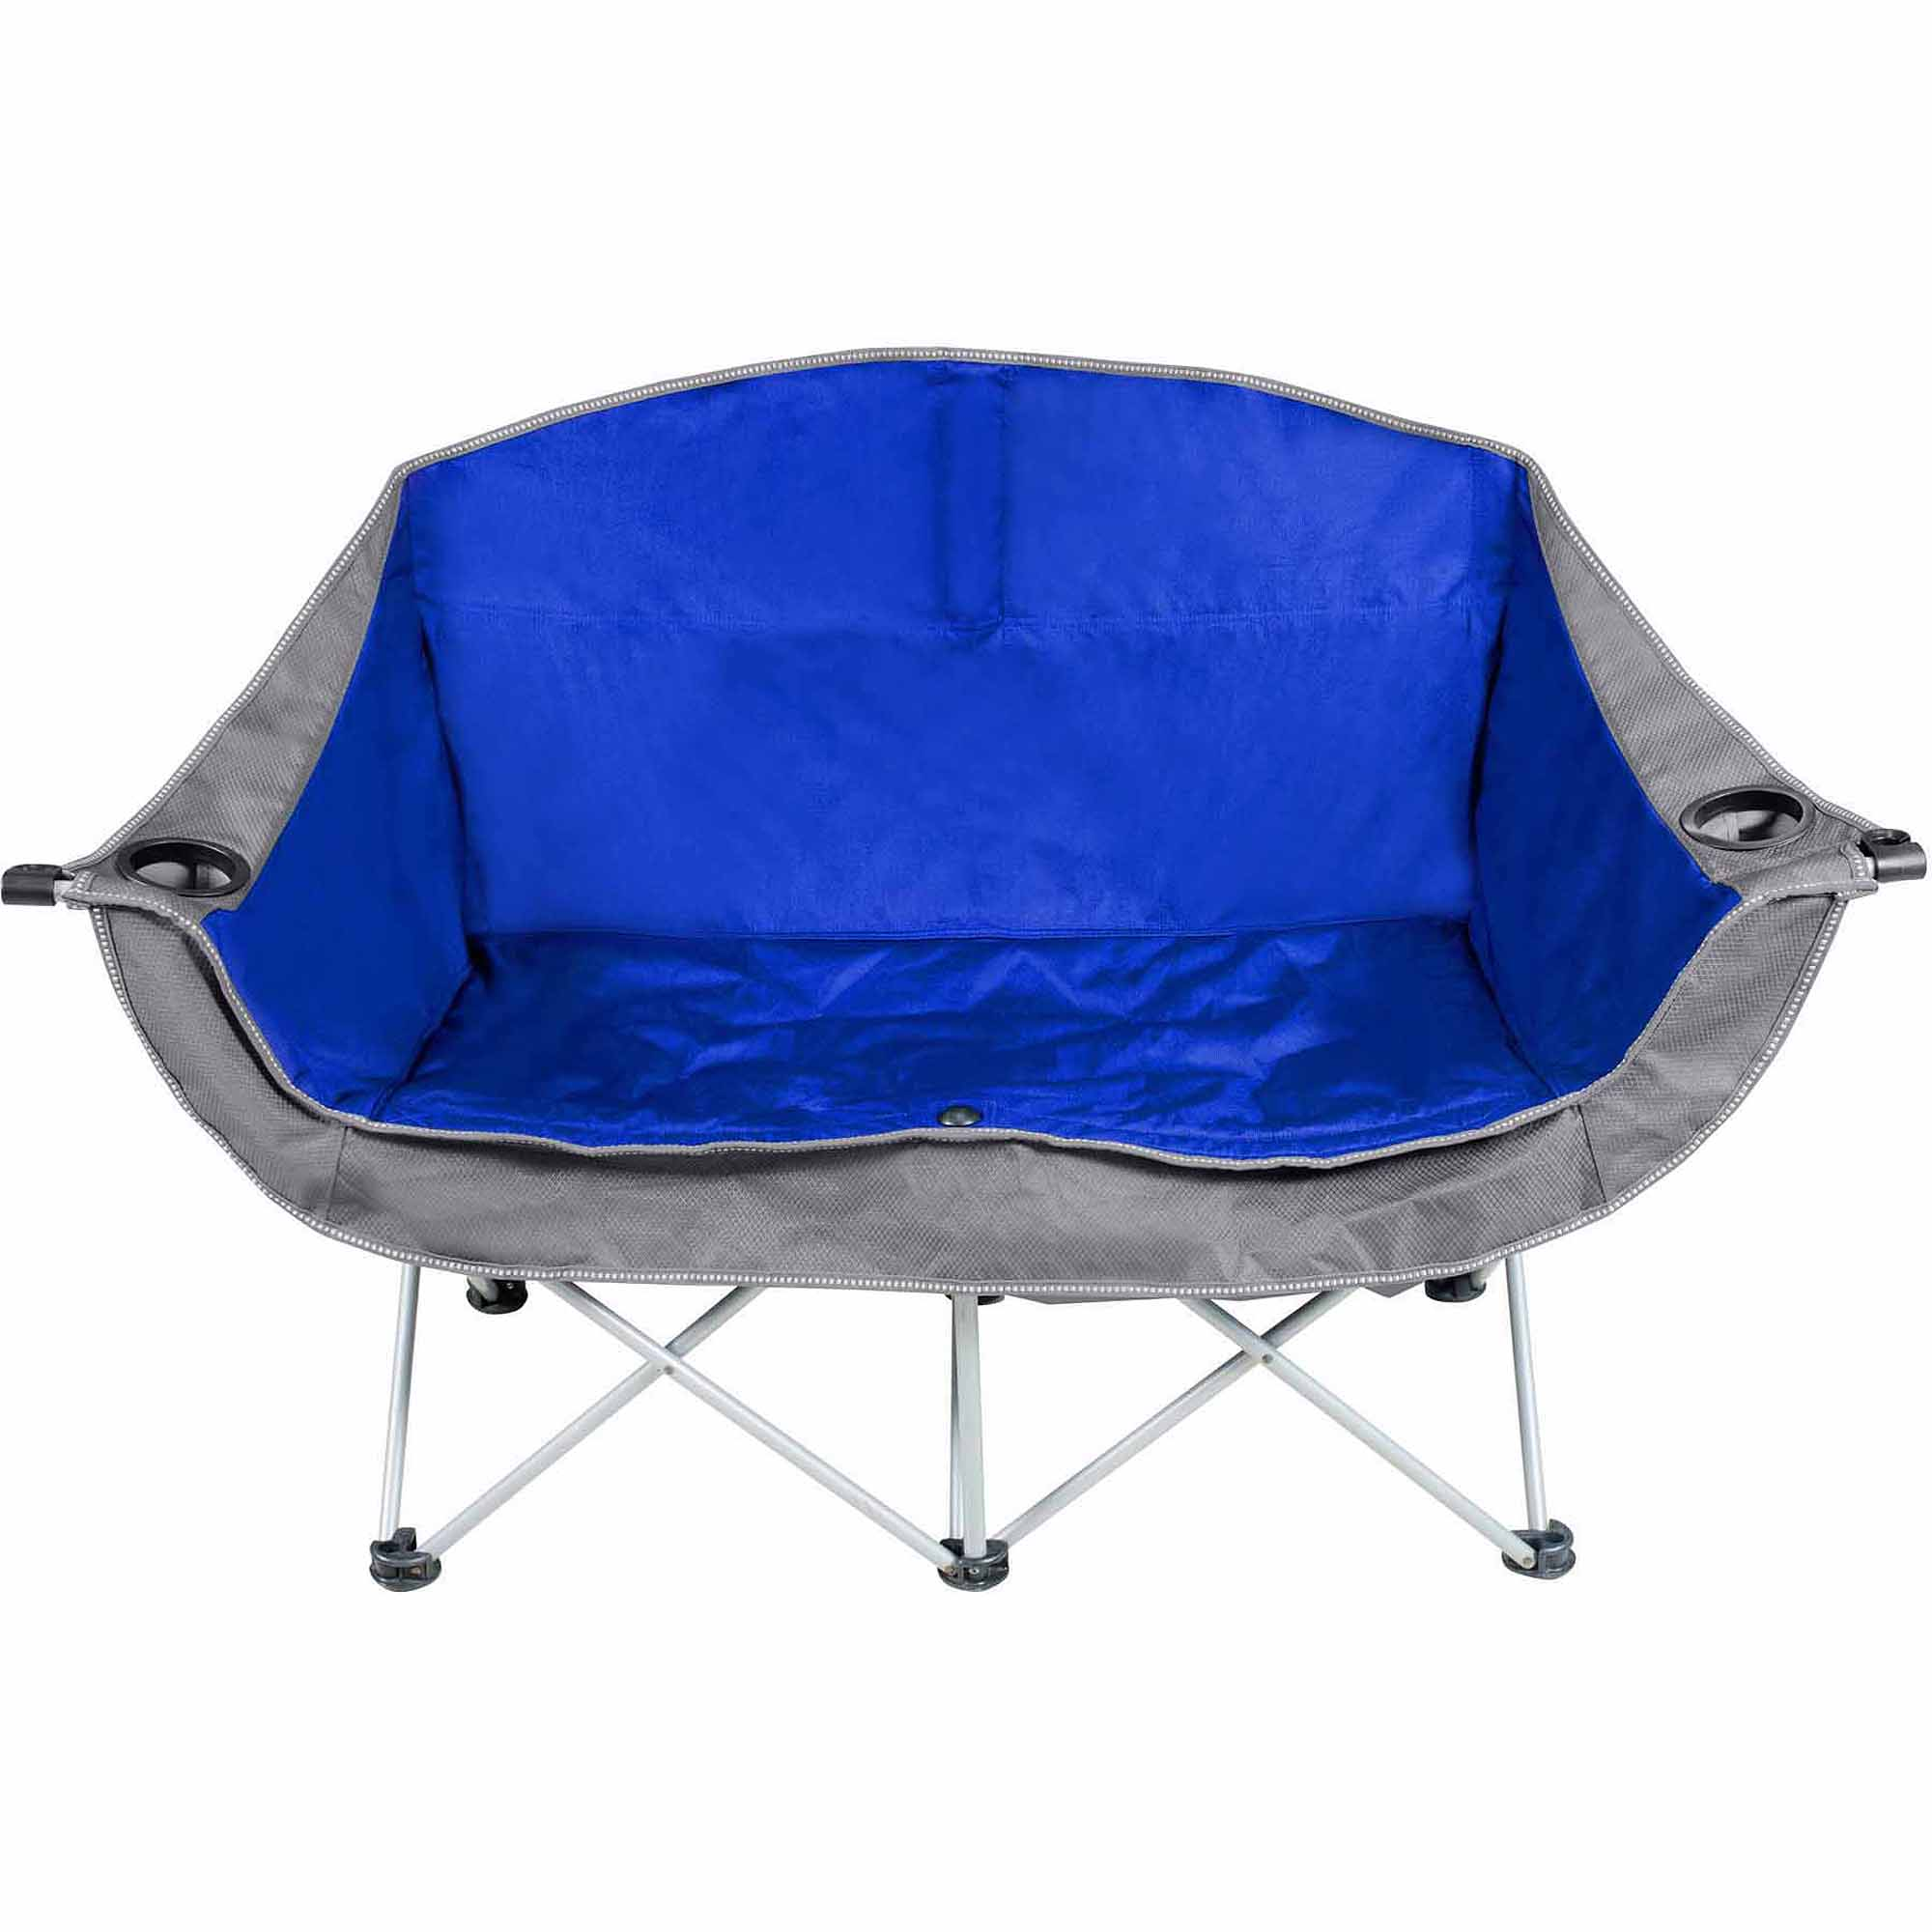 Superieur Ozark Trail 2 Person Camping Love Seat   Walmart.com